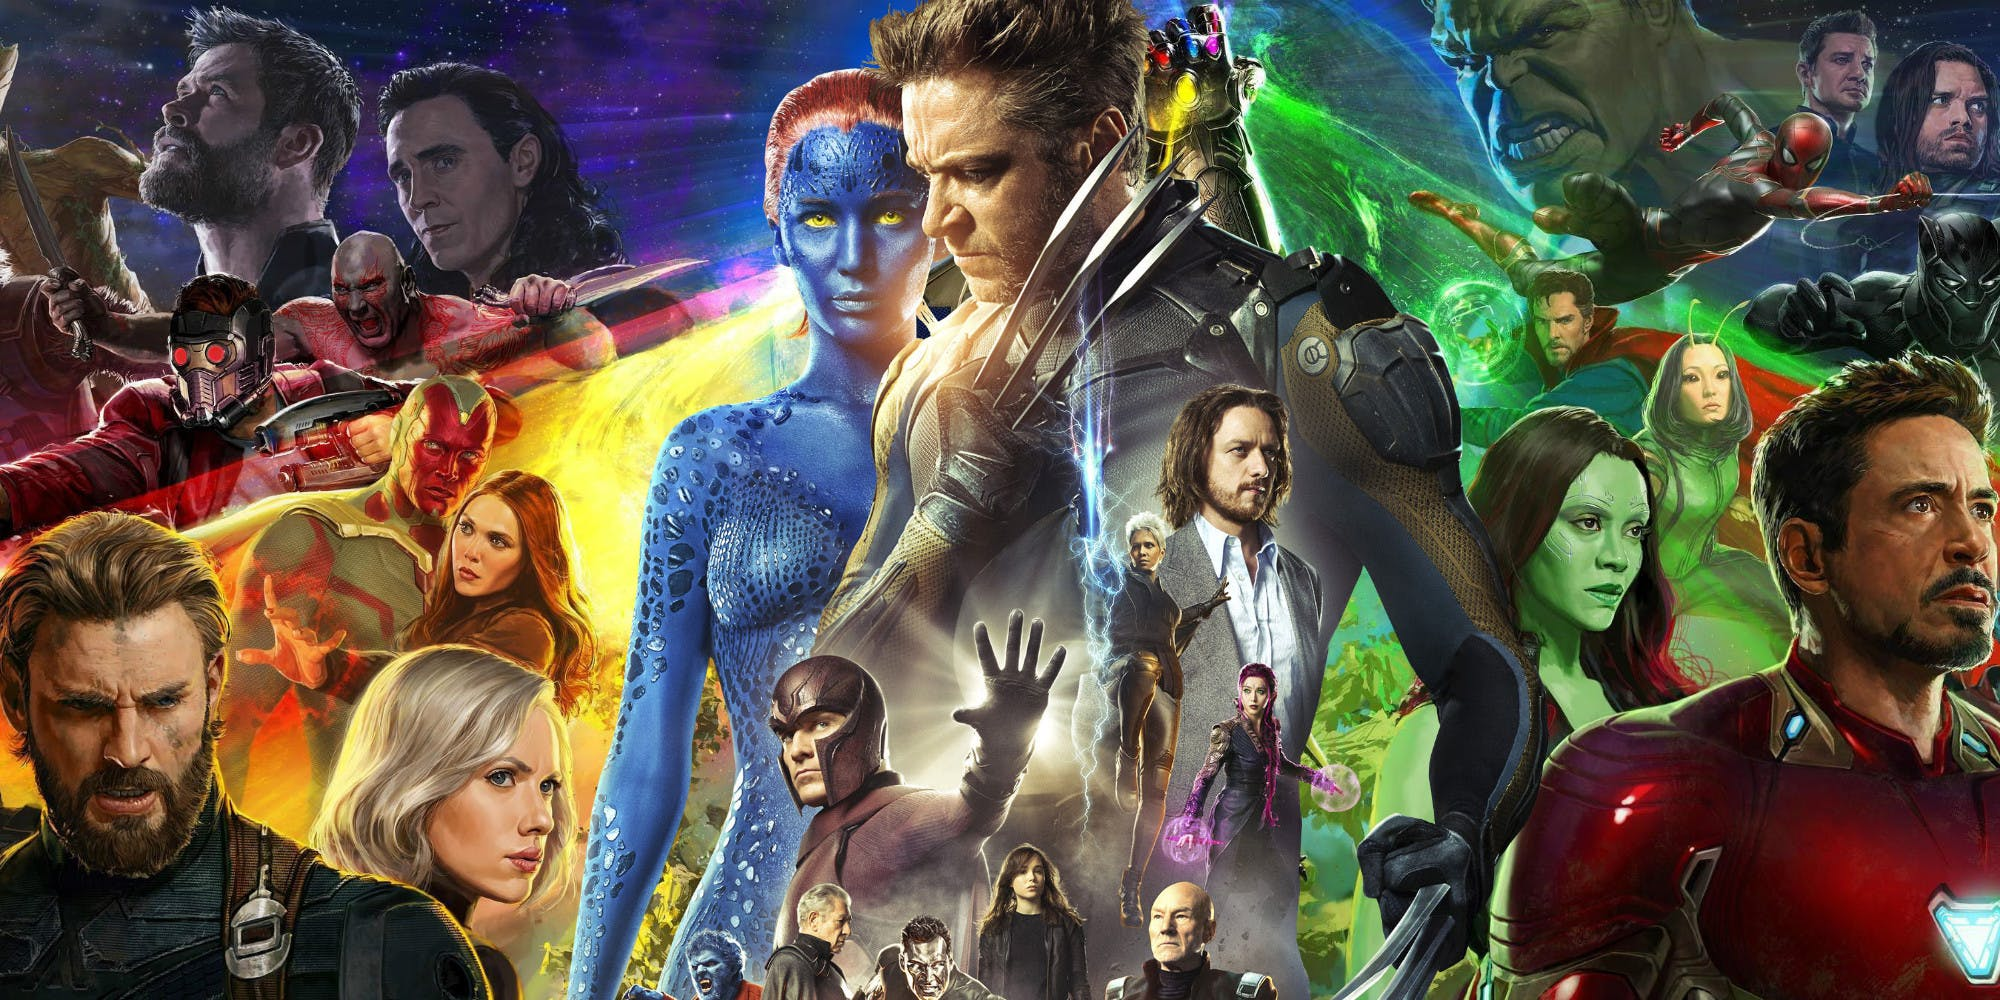 Avengers Endgame and X-Men Crossover is unlikely, here's why